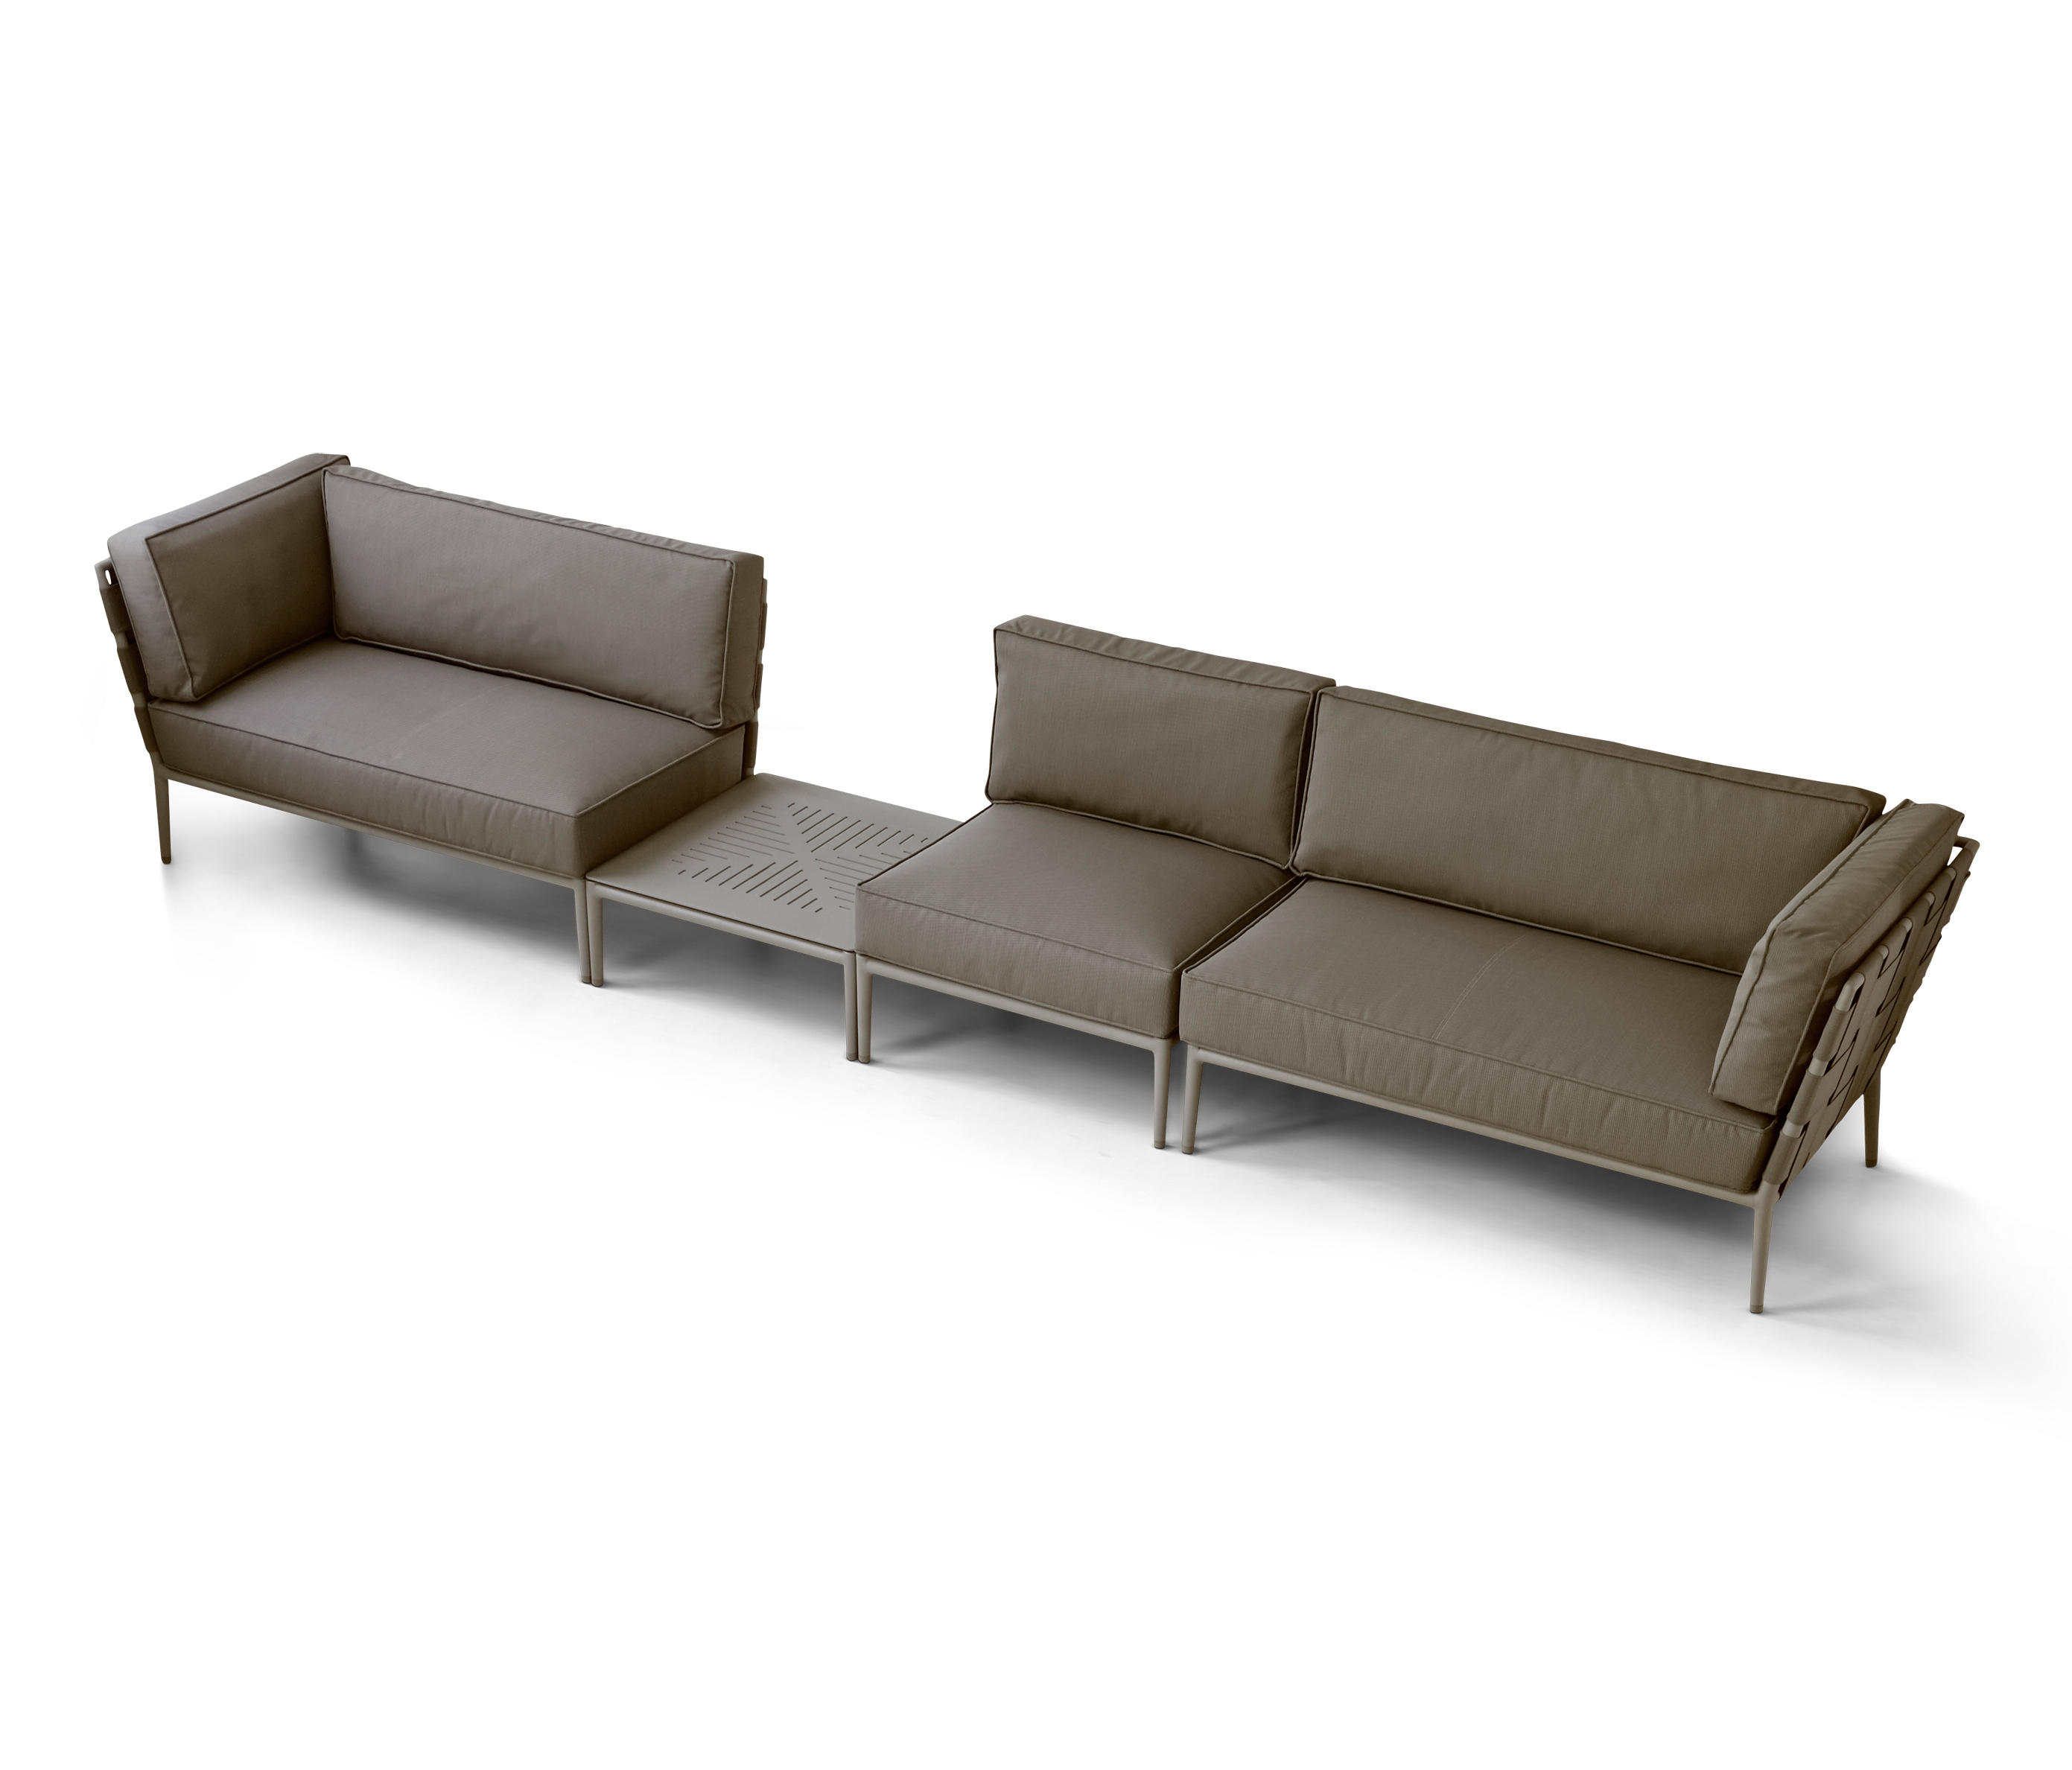 Conic Loungesessel Sessel Von Cane Line Architonic